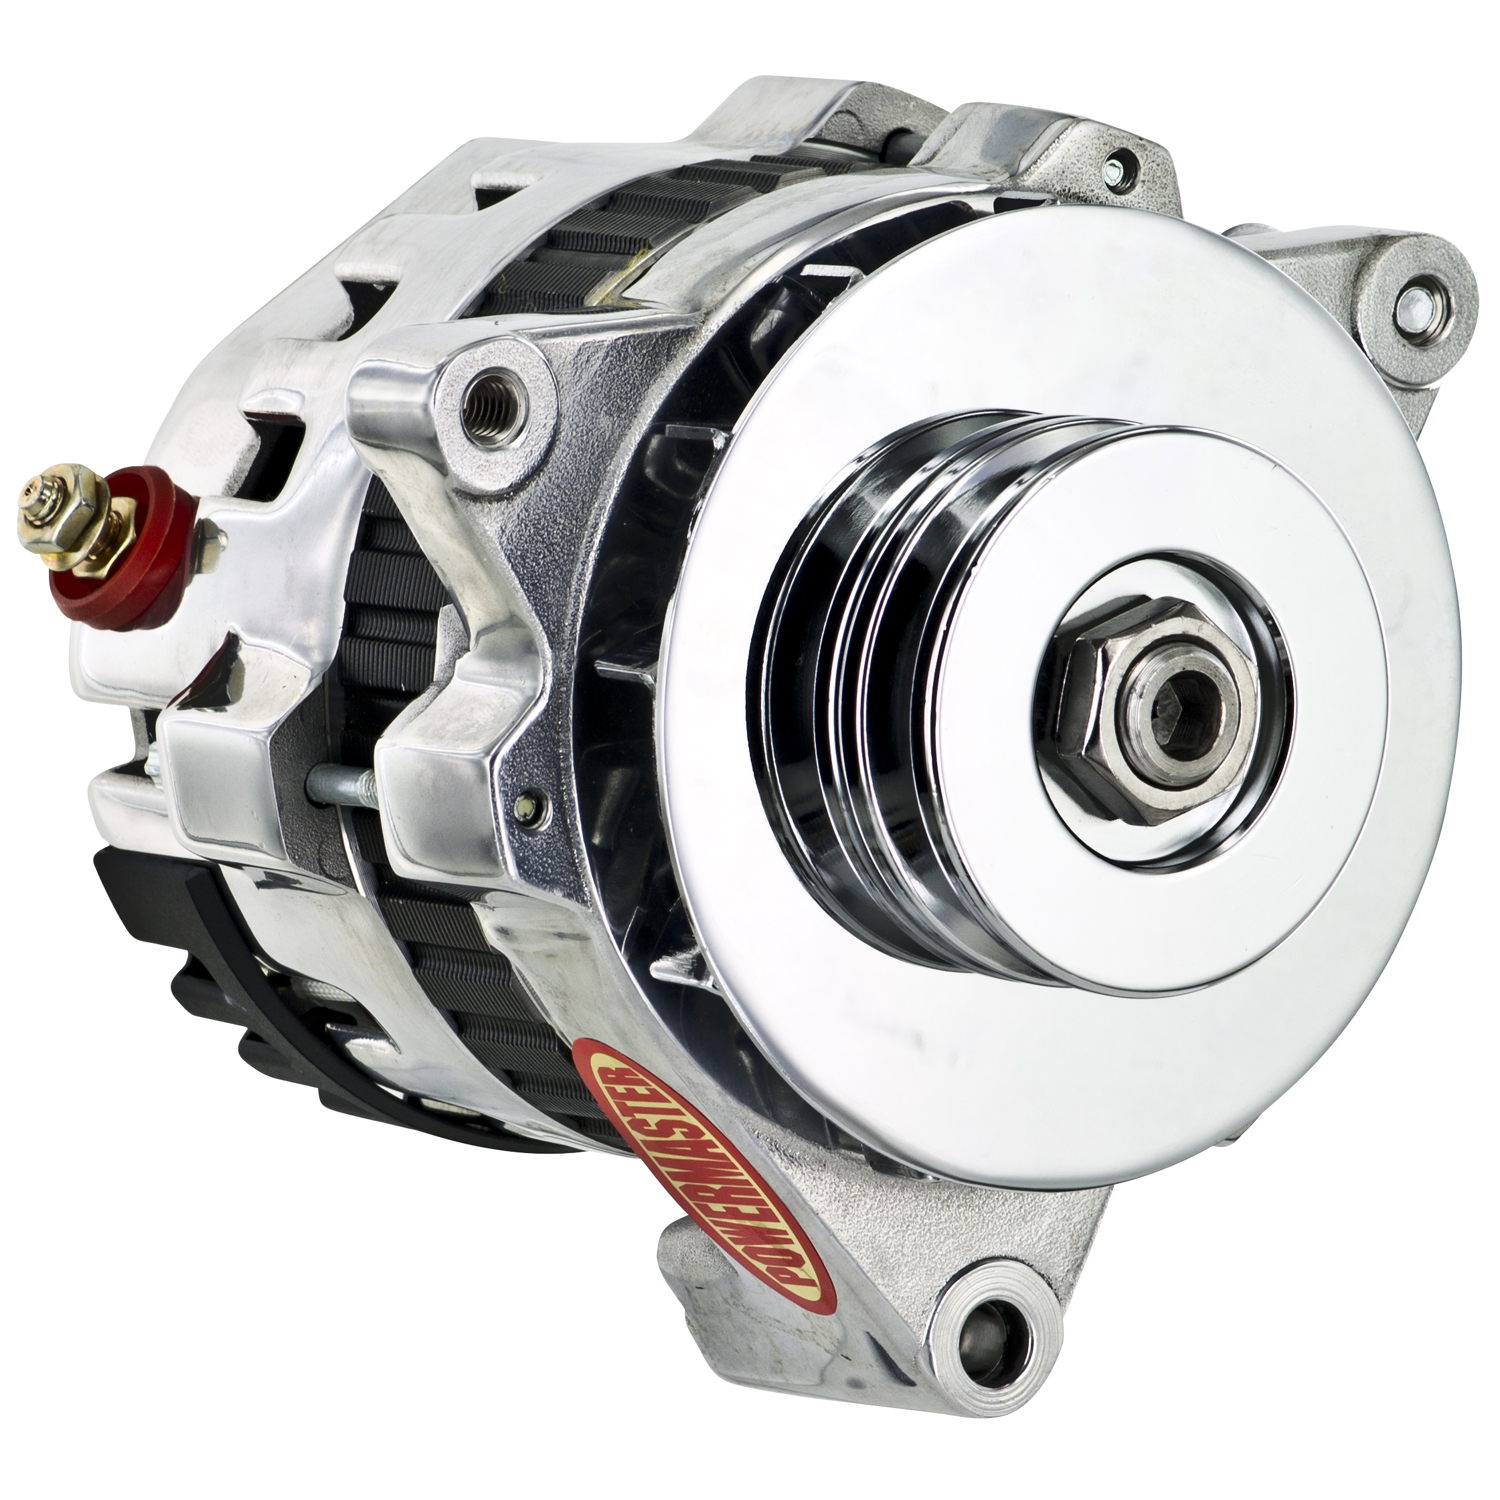 Powermaster 28478-114 - Powermaster GM CS121 Style 5x5 Compact Race Alternators